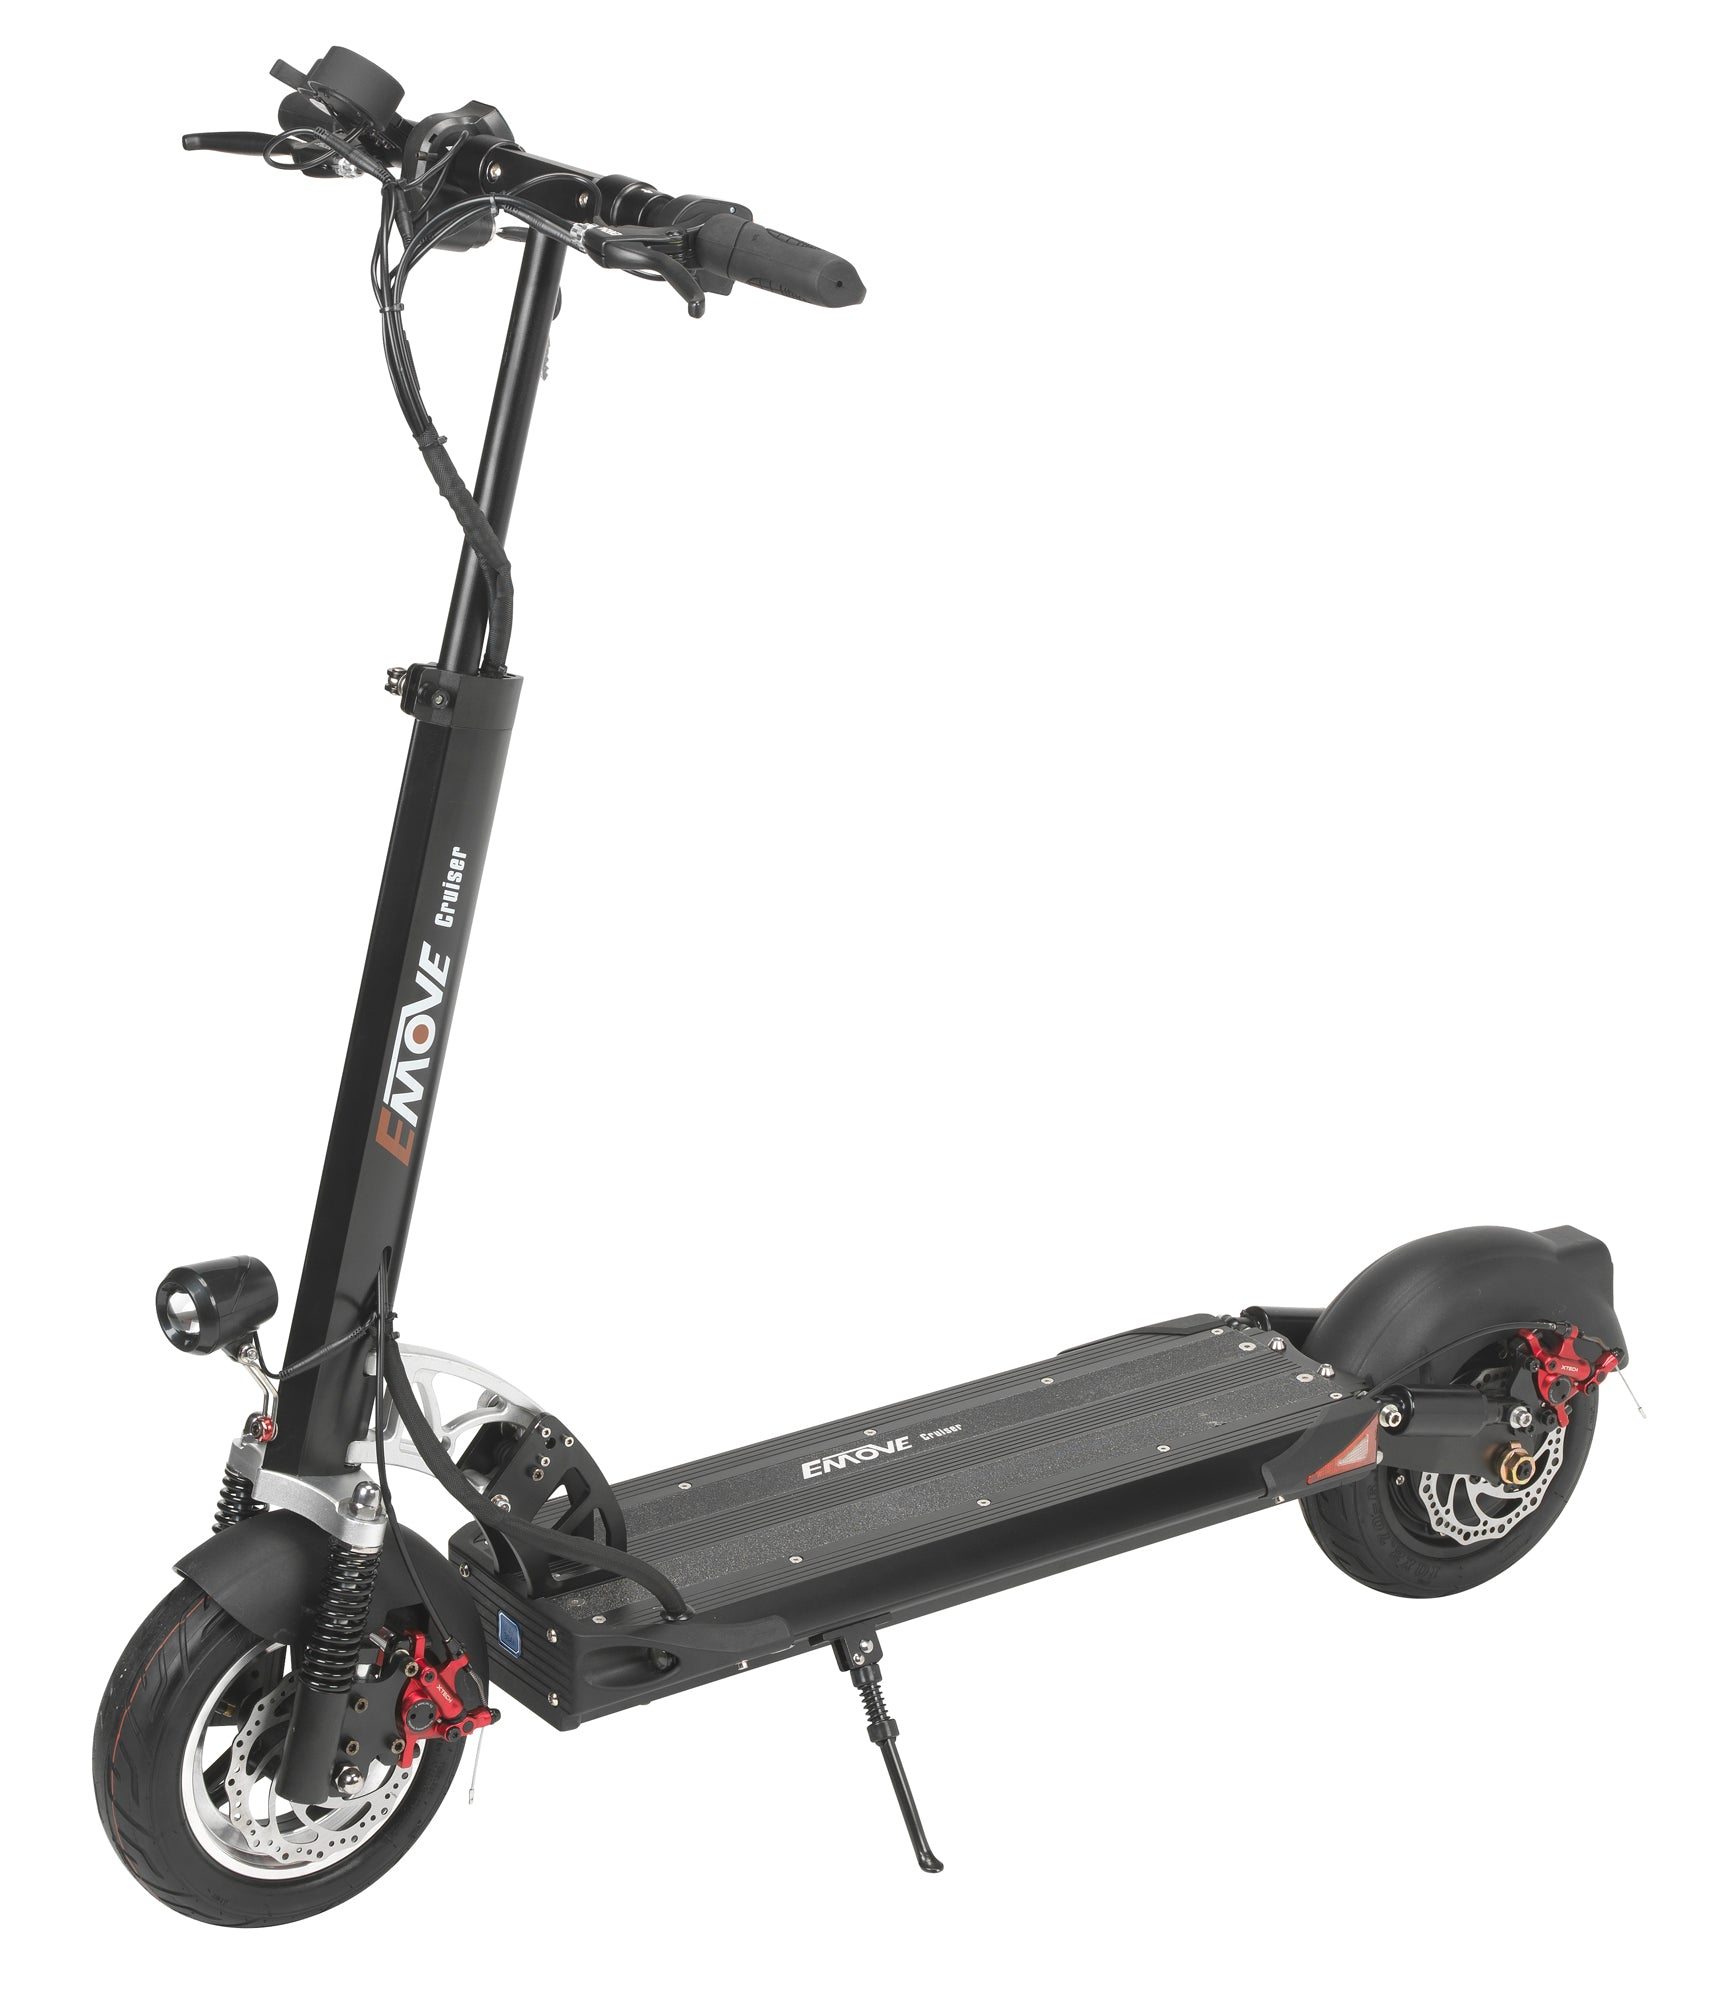 The all new 2019 EMOVE Cruiser Electric Scooter Black